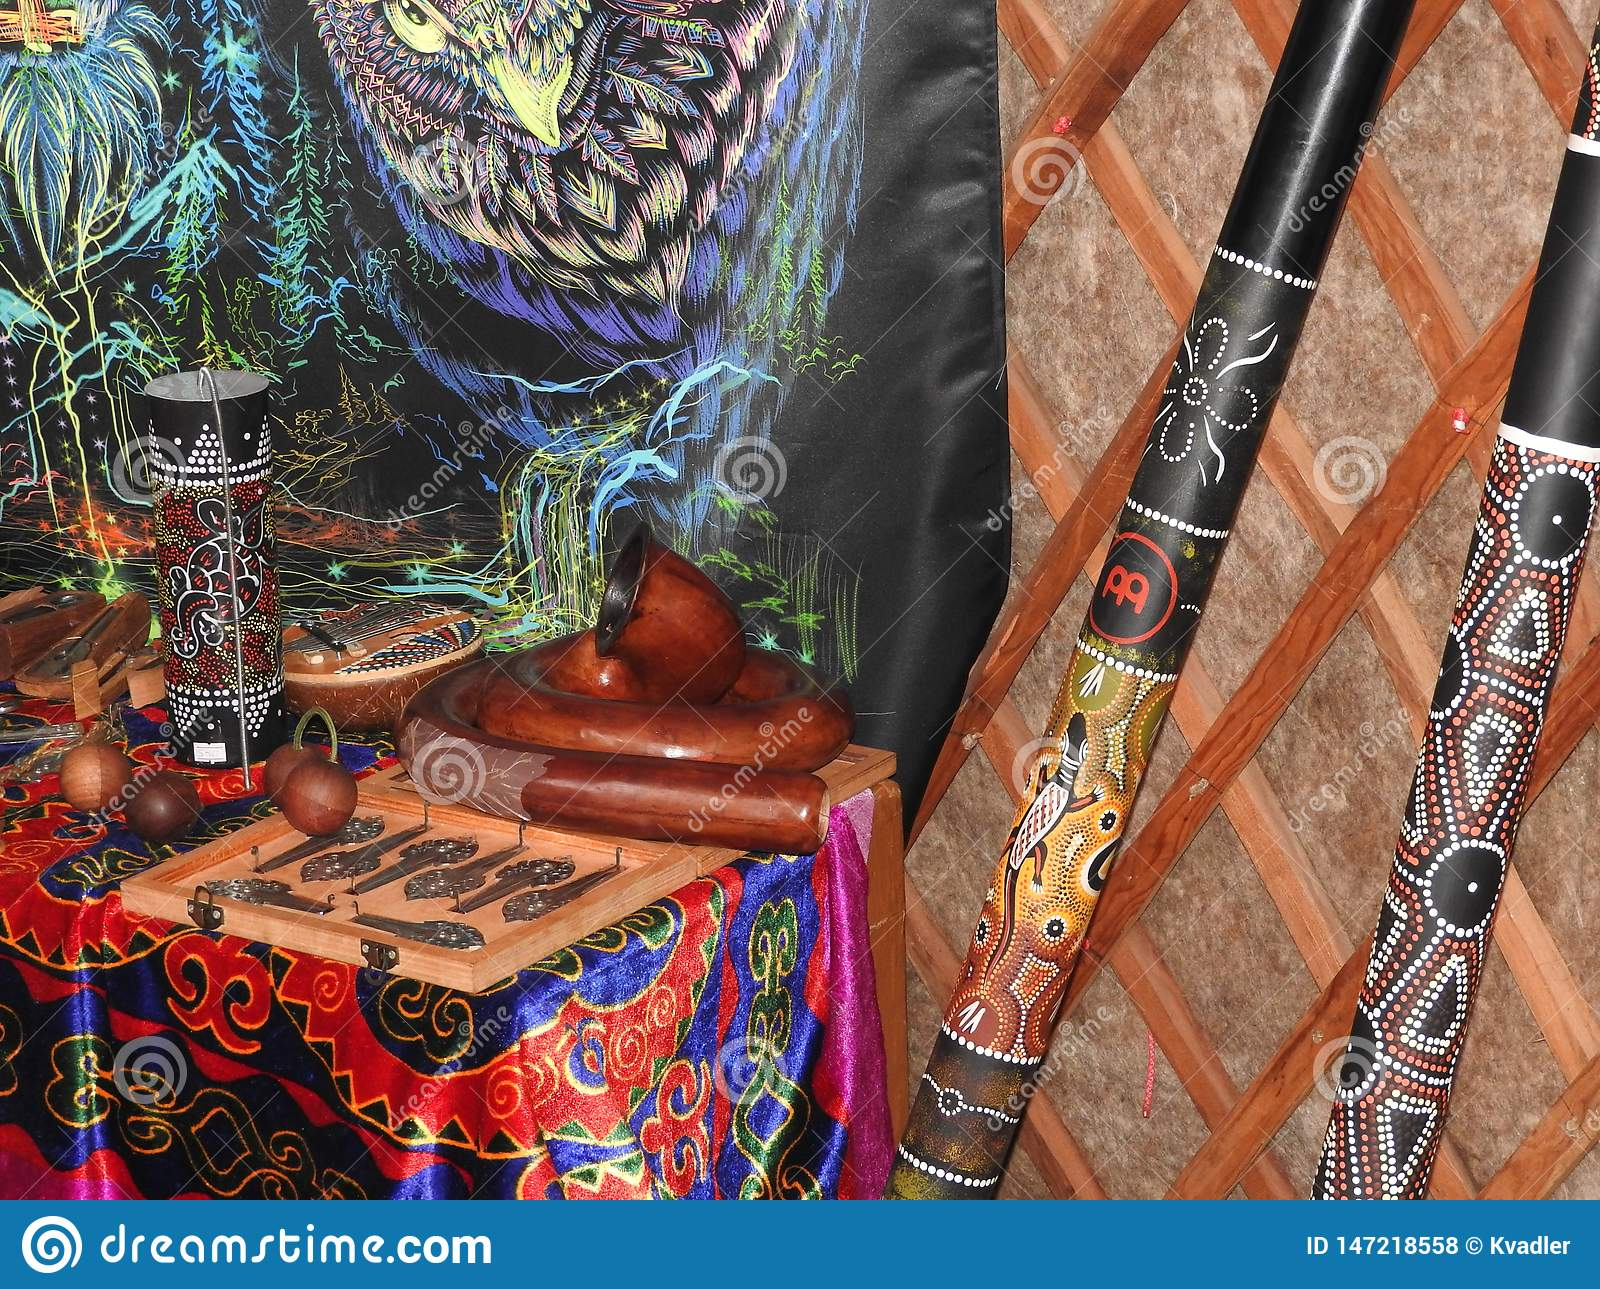 Mystical background with ritual objects of esoteric, occult, divination, magic objects. Occult, esoteric, divination and the